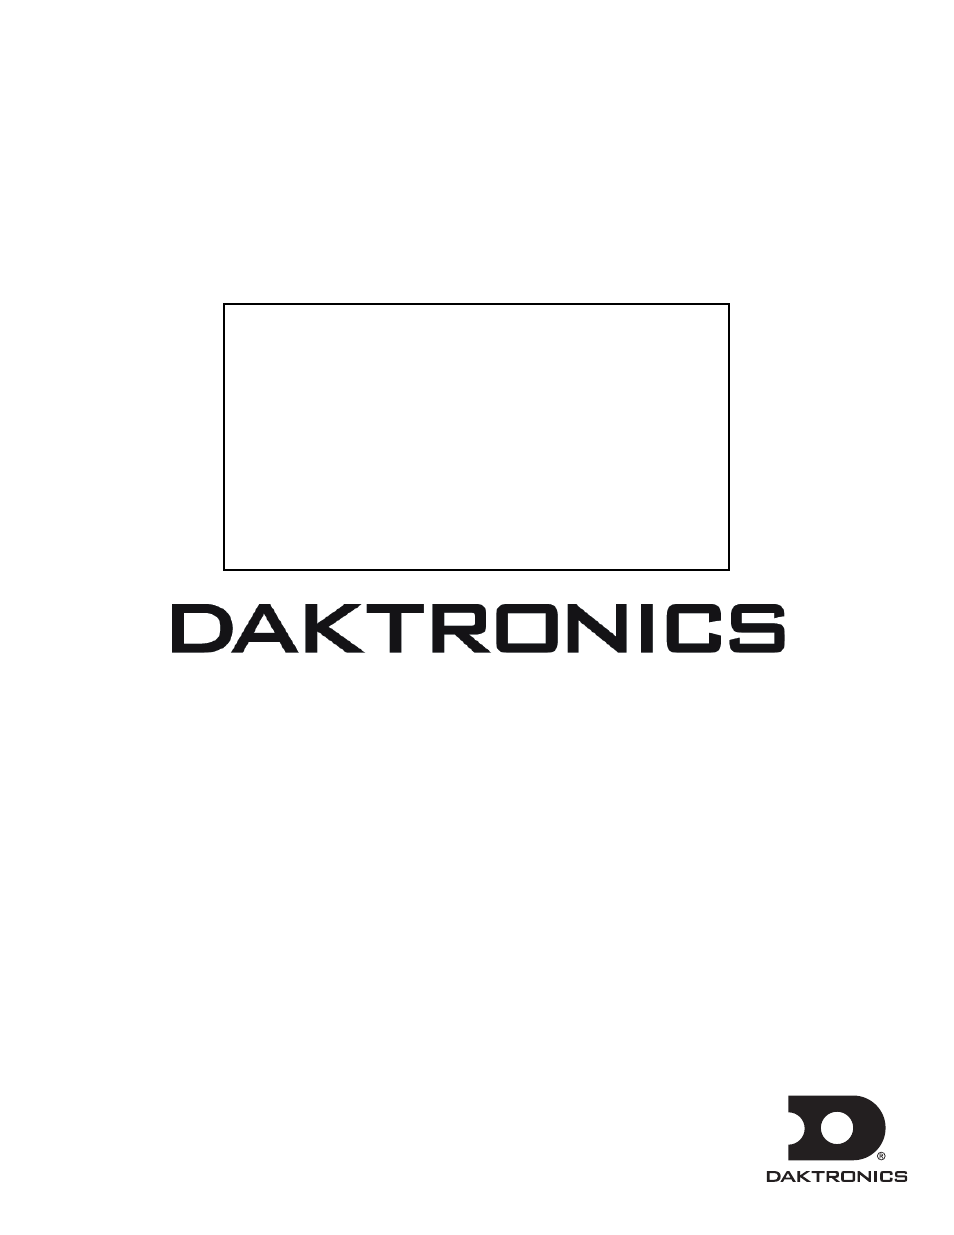 daktronics galaxy af 3500 3550 user manual 47 pages also for af rh manualsdir com Honeywell 5843 Champion 5843 Cross Reference